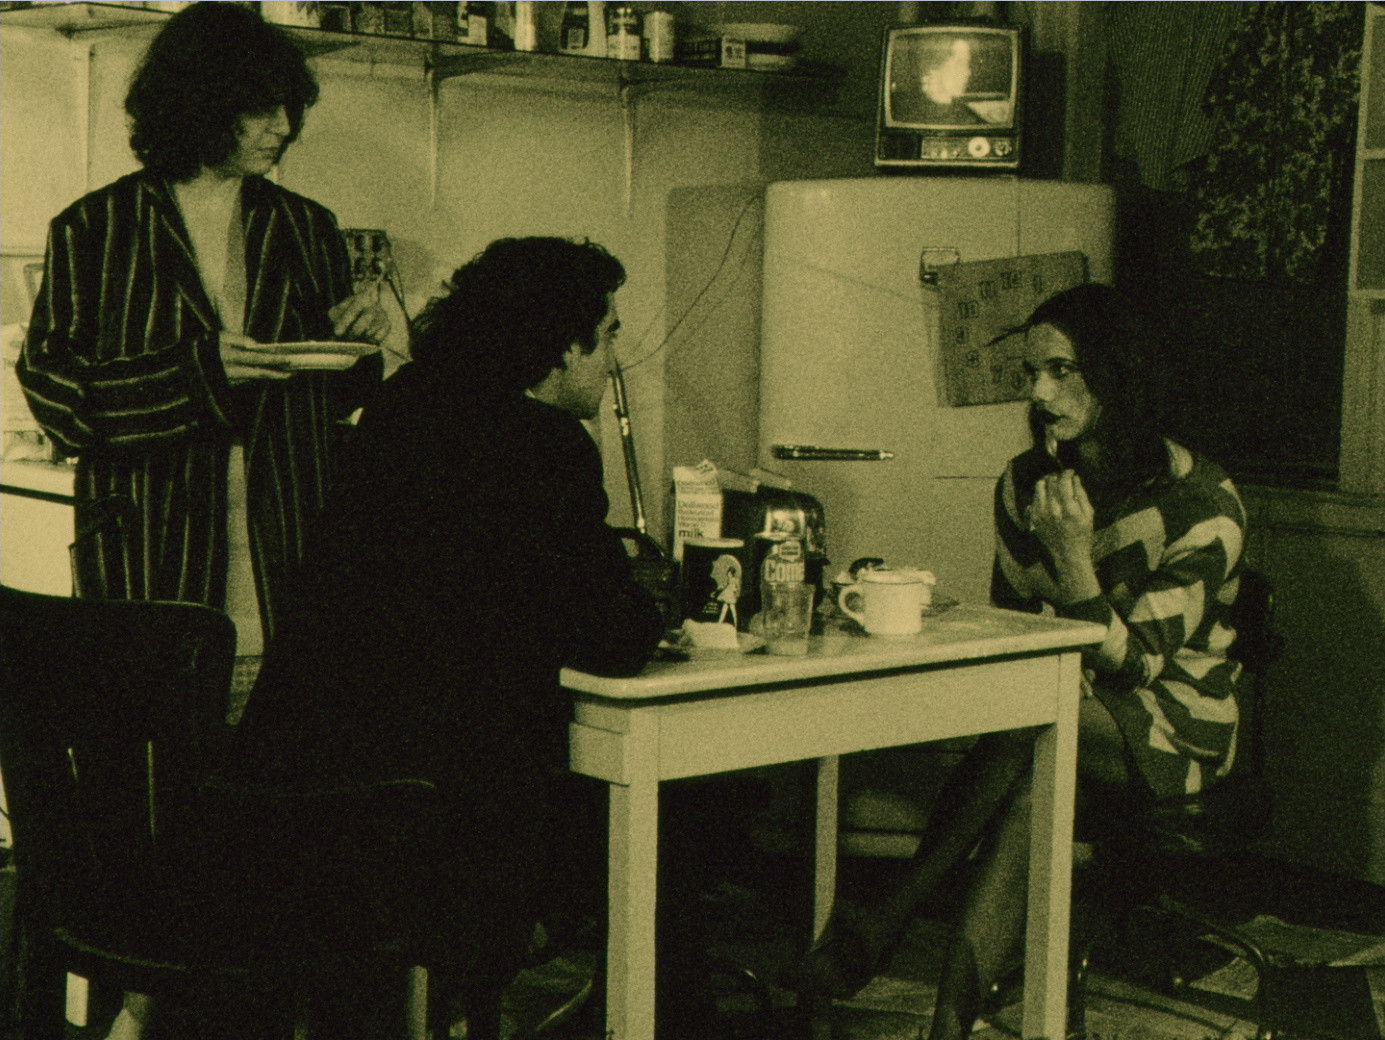 Steve Brown, Ellie Nagler, Barry Shils. The Jones. Digital video from 16mm (color, sound), 24:30 min.